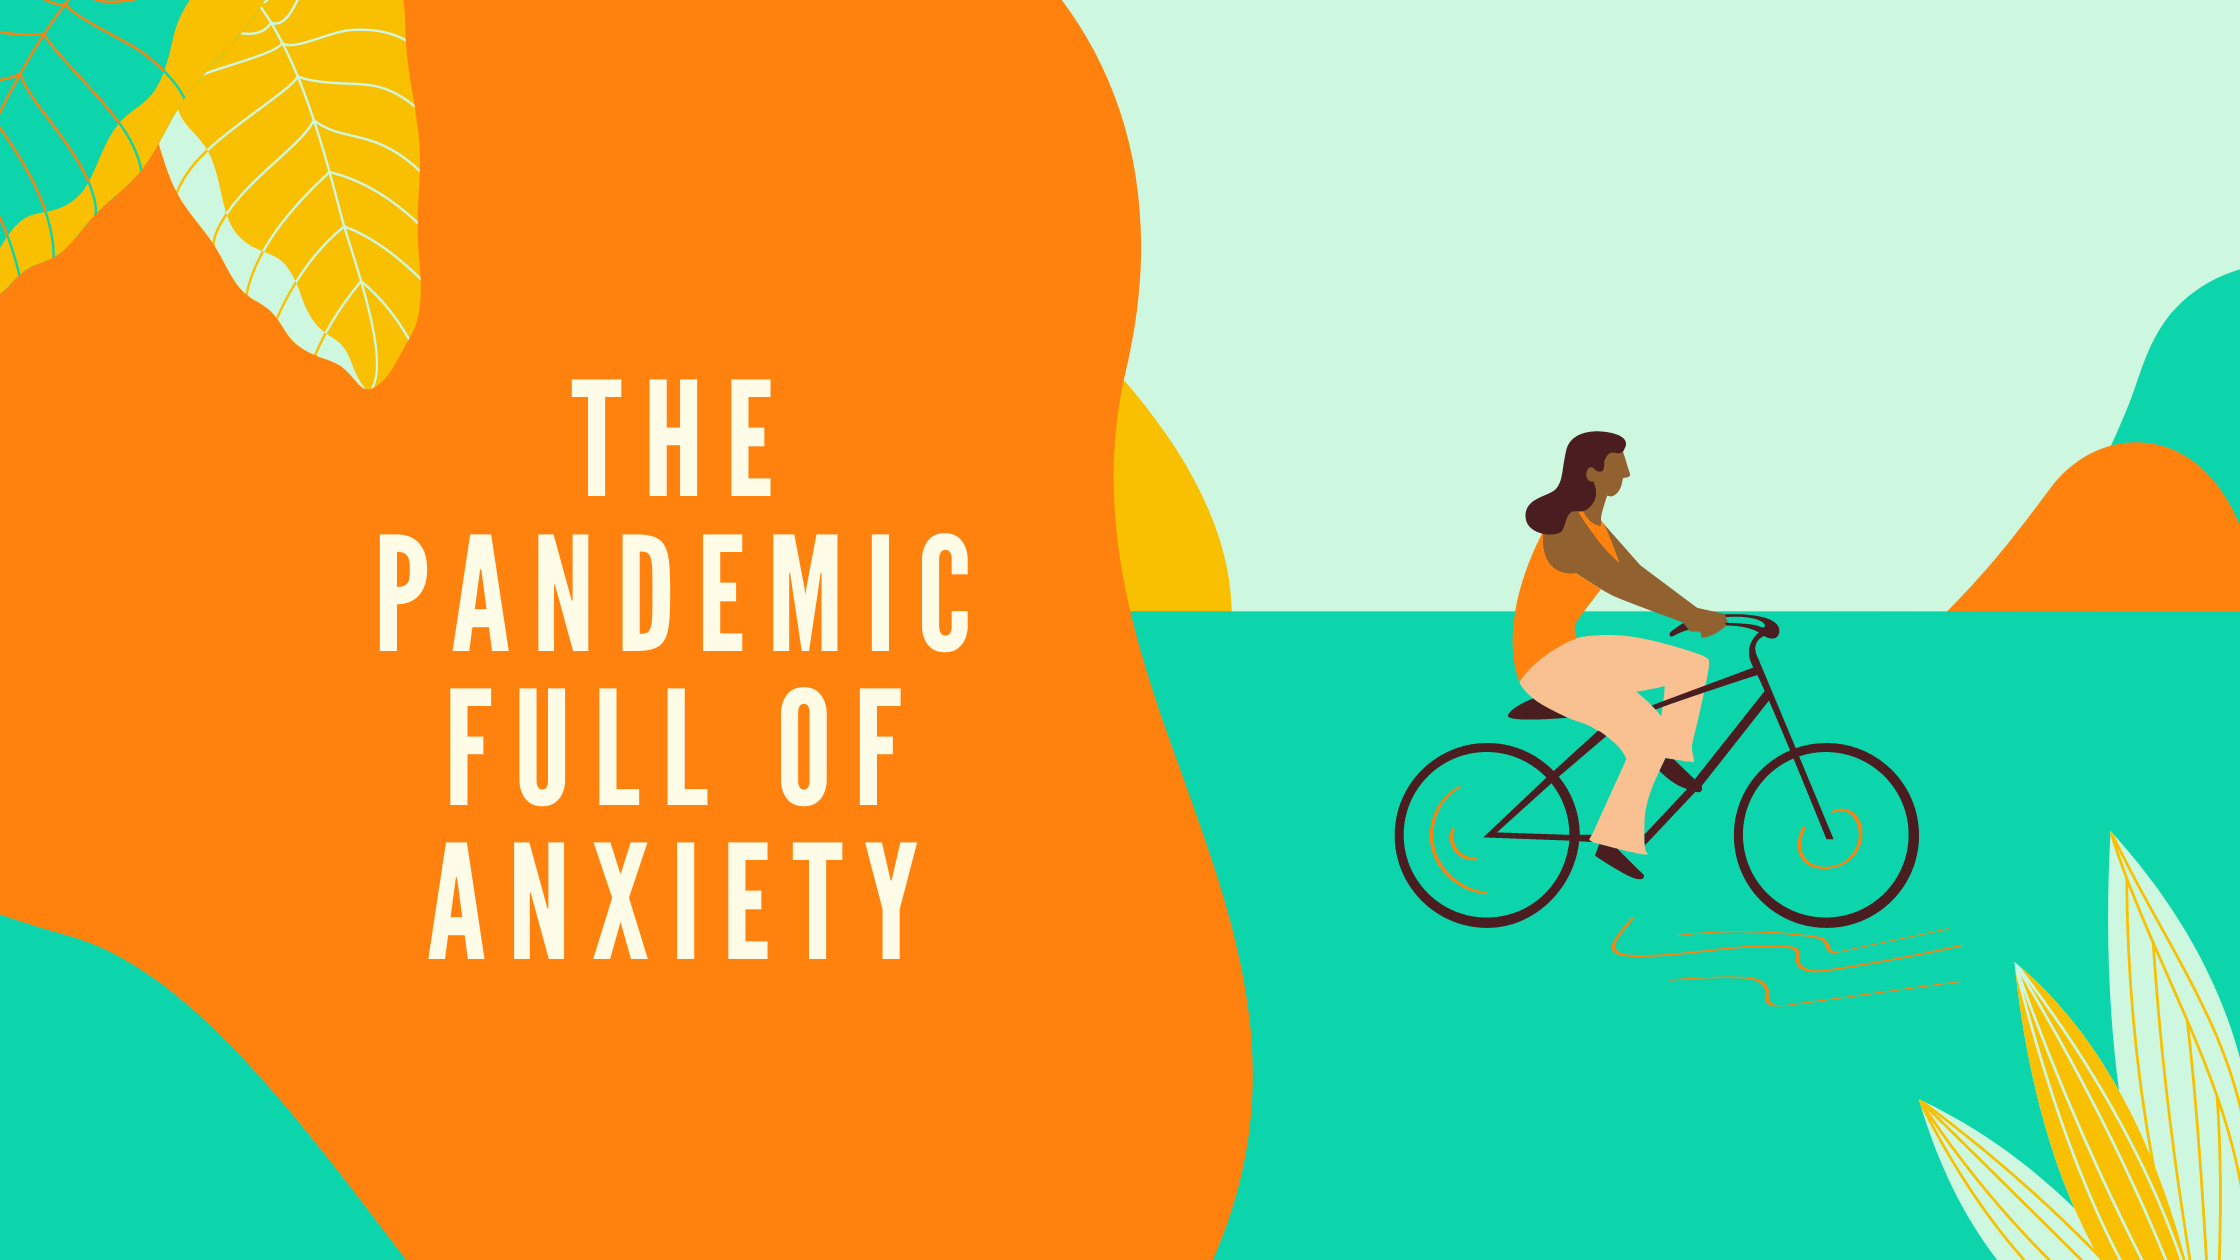 The pandemic full of anxiety